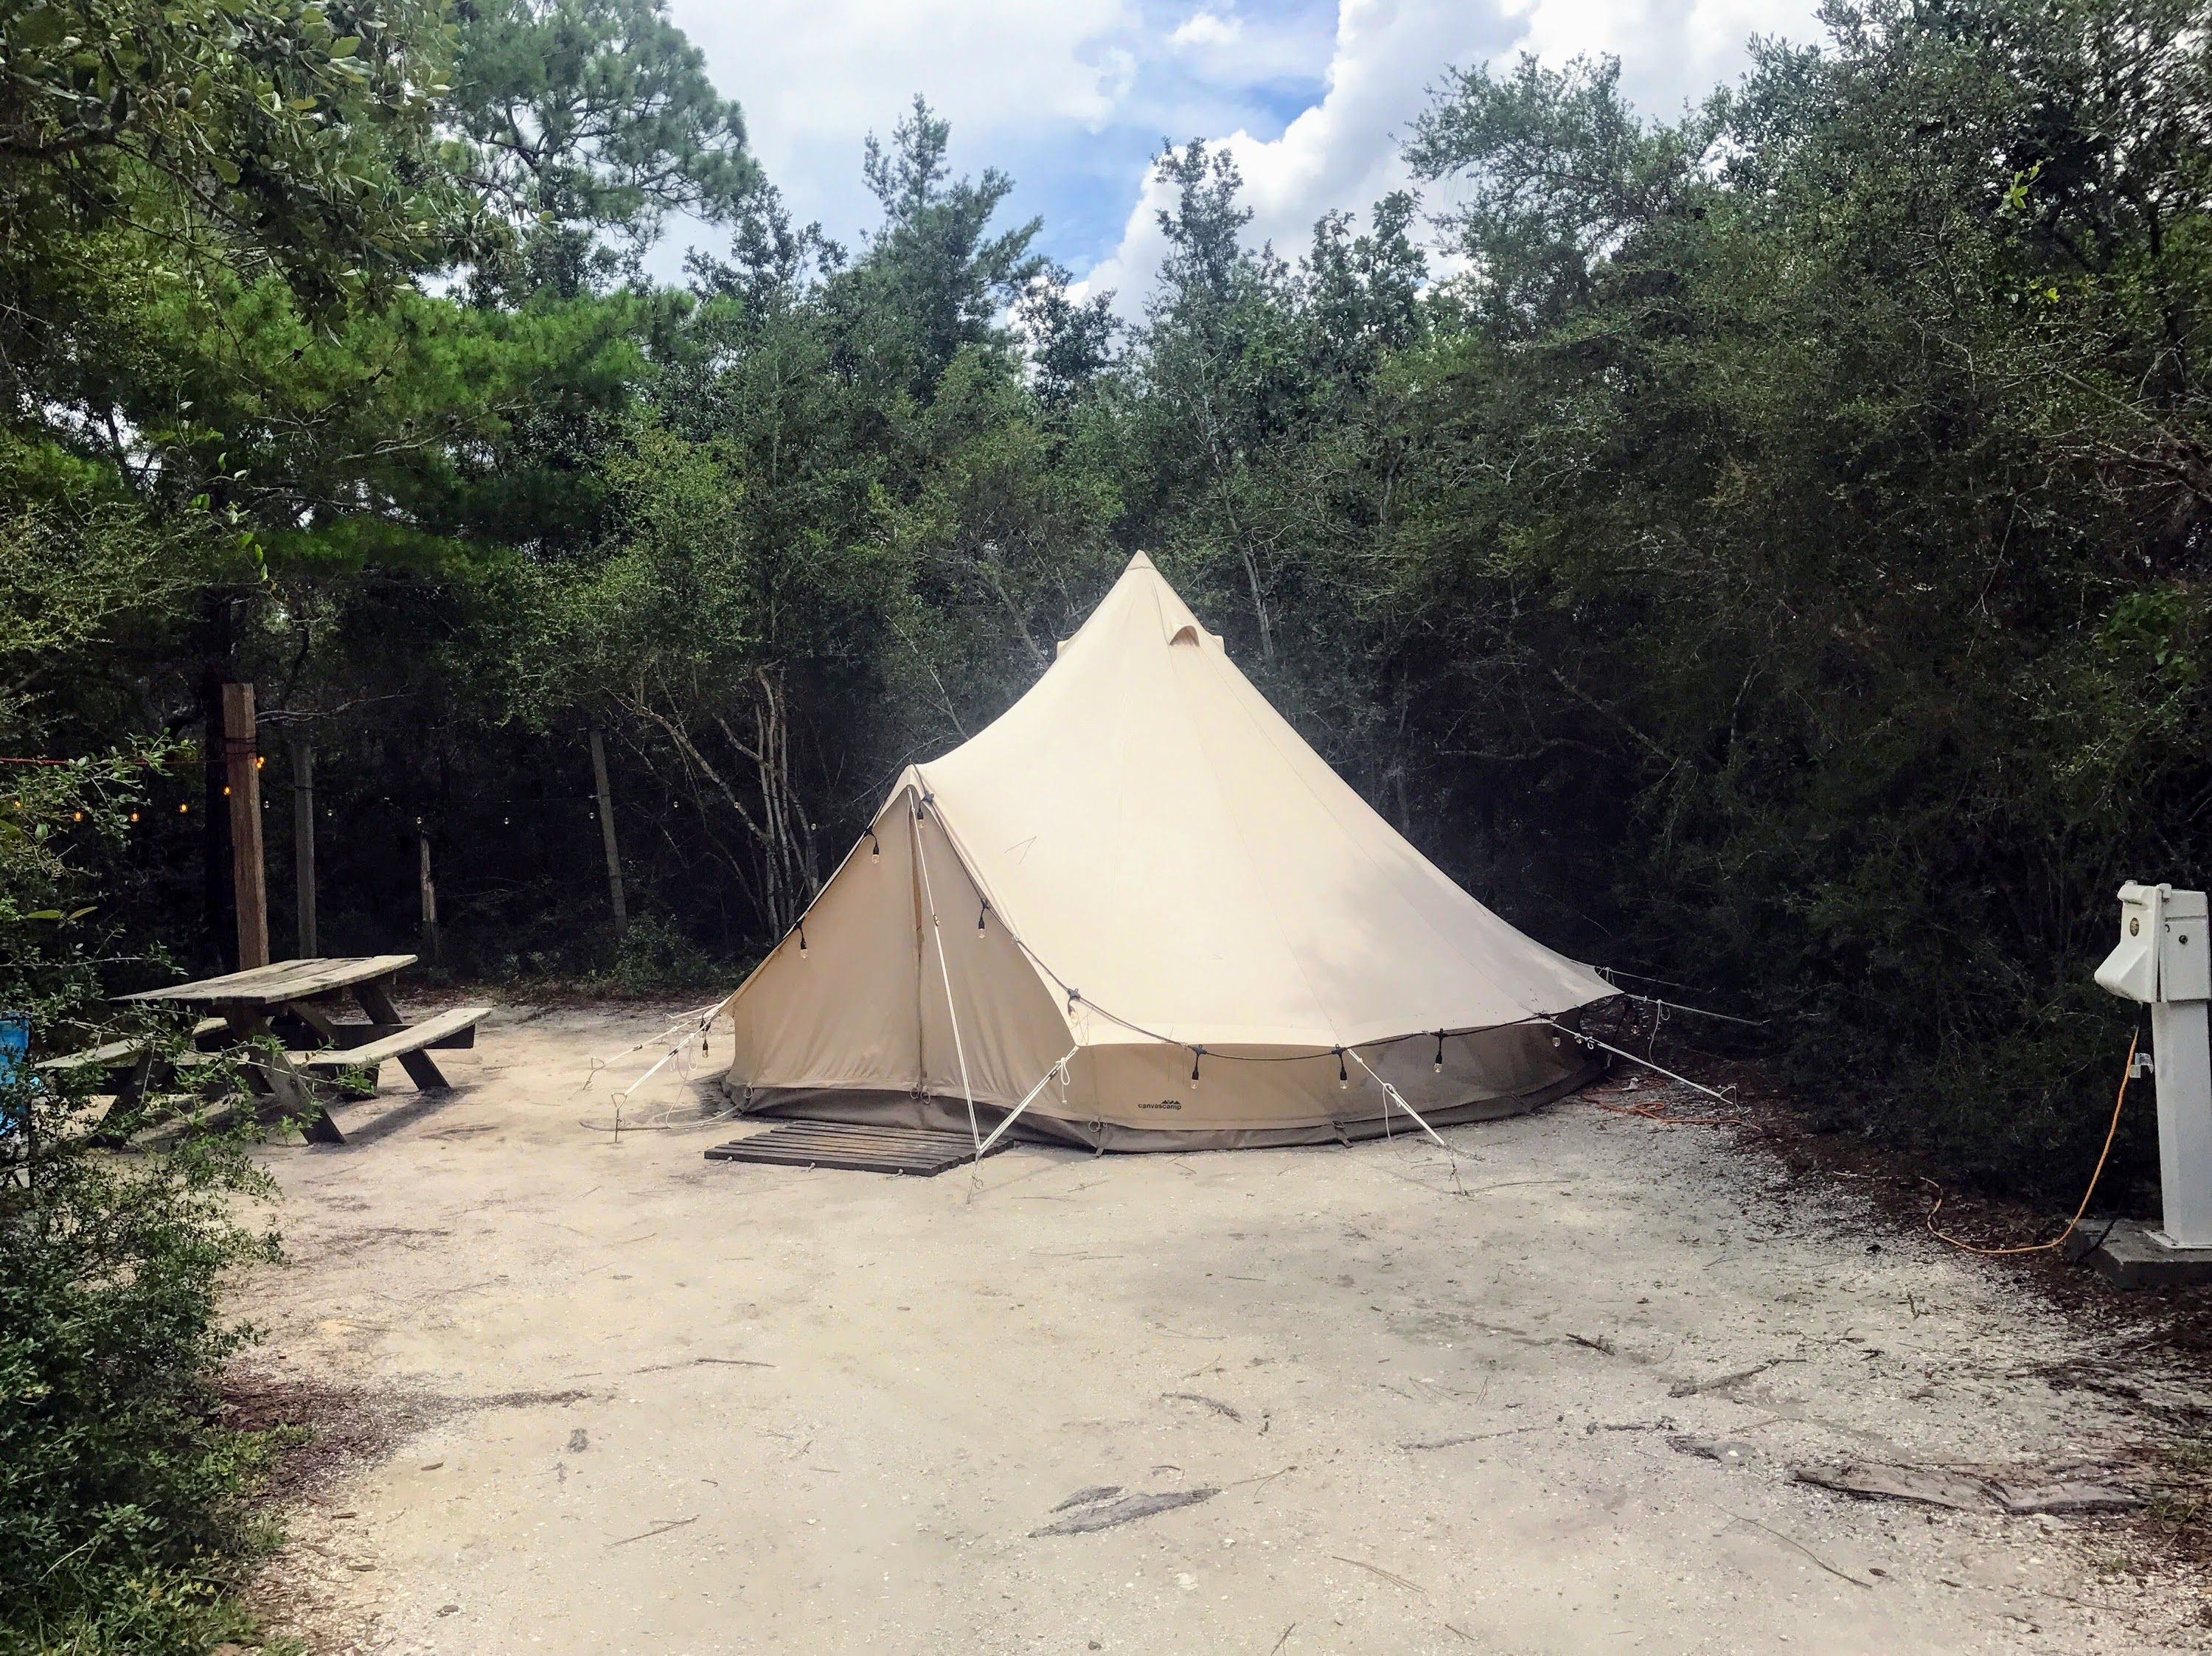 Beach Camping Is A Breeze At Grayton State Park Where You Will Enjoy The Benefits Of Electricity Picnic Table And Course Access To Beautiful